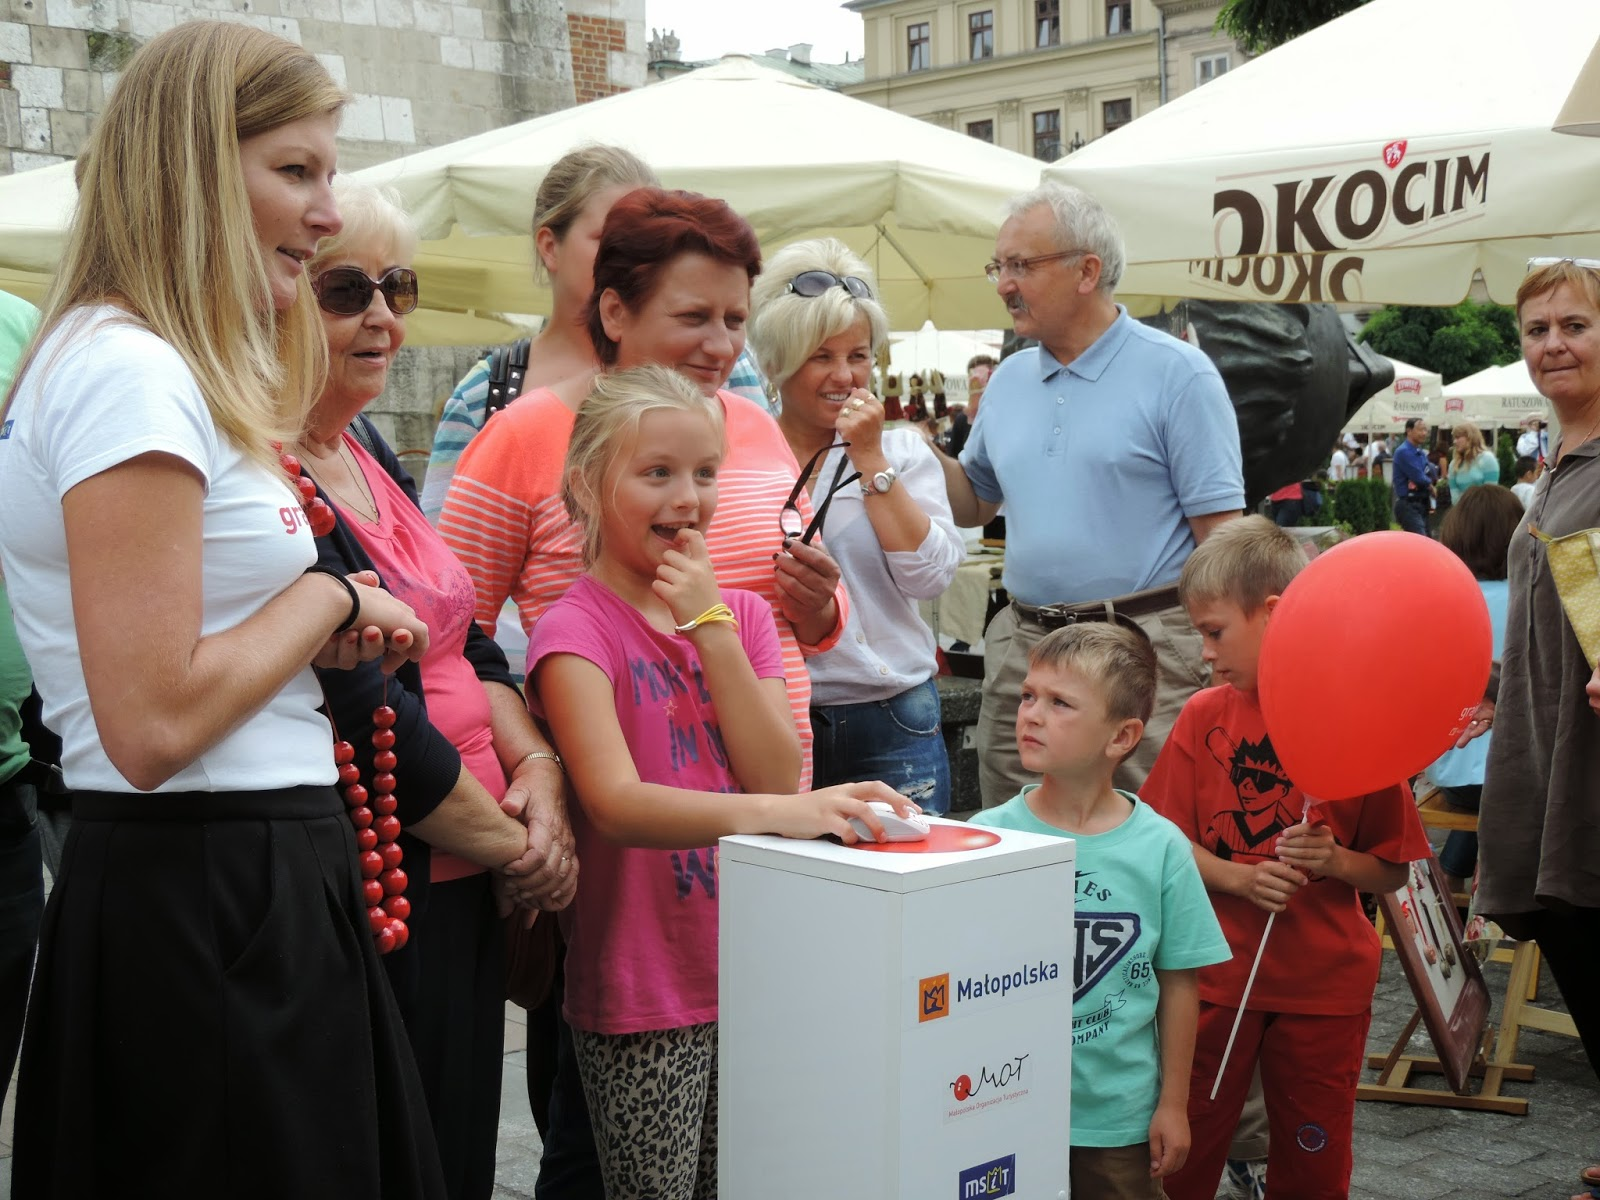 Uczestnicy quizu | People of all ages trying the Małopolski quizz